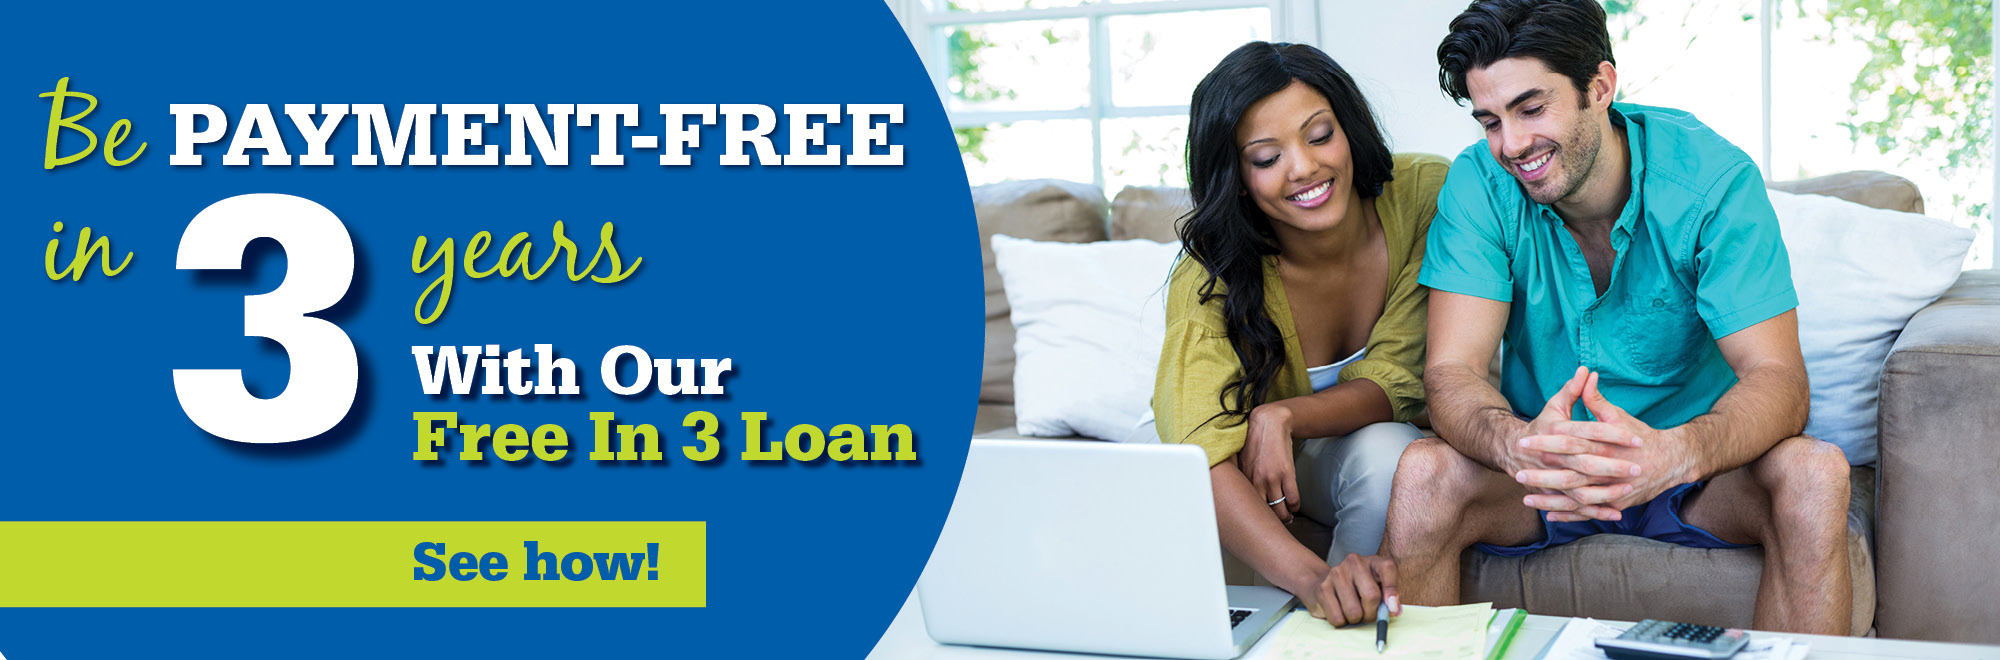 Be payment-free in 3 years with our free in 3 loan. See how!